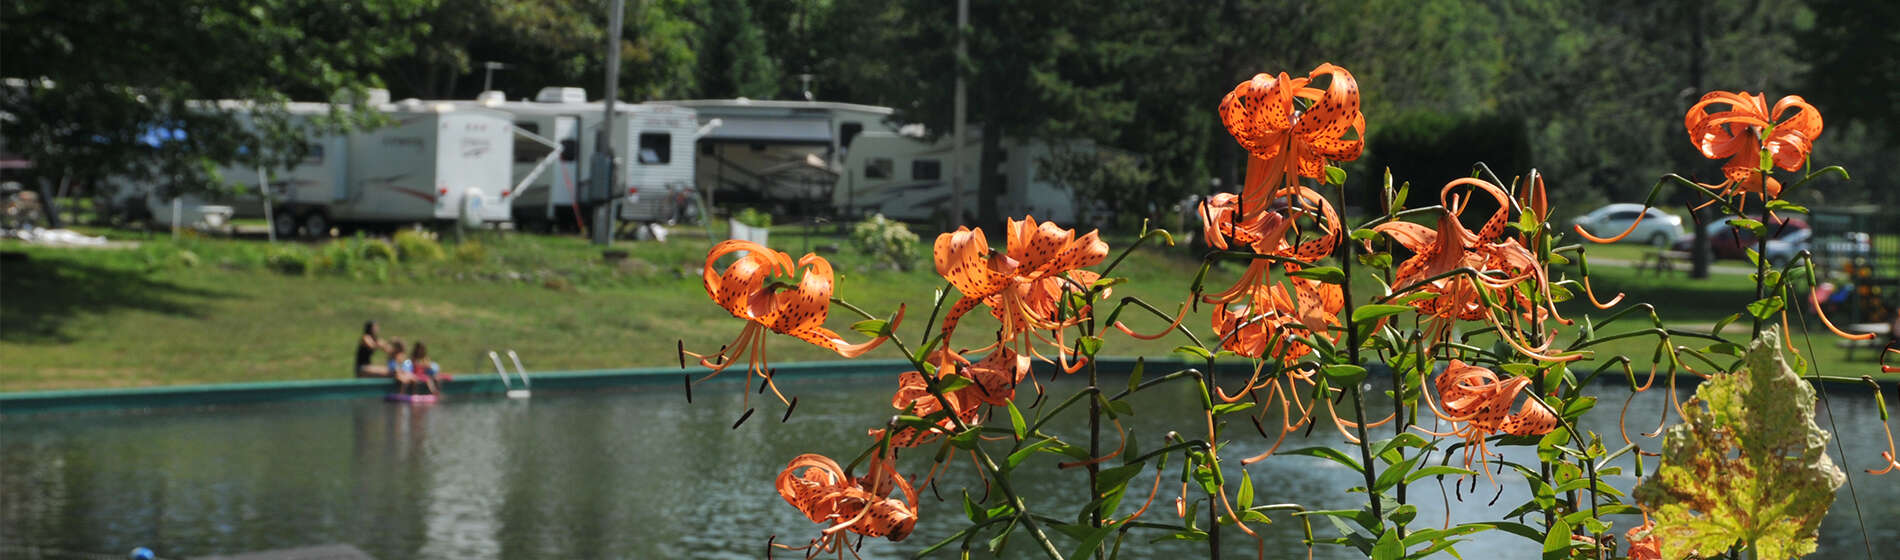 Welcome to camping Lac-Saint-Michel located in Mauricie